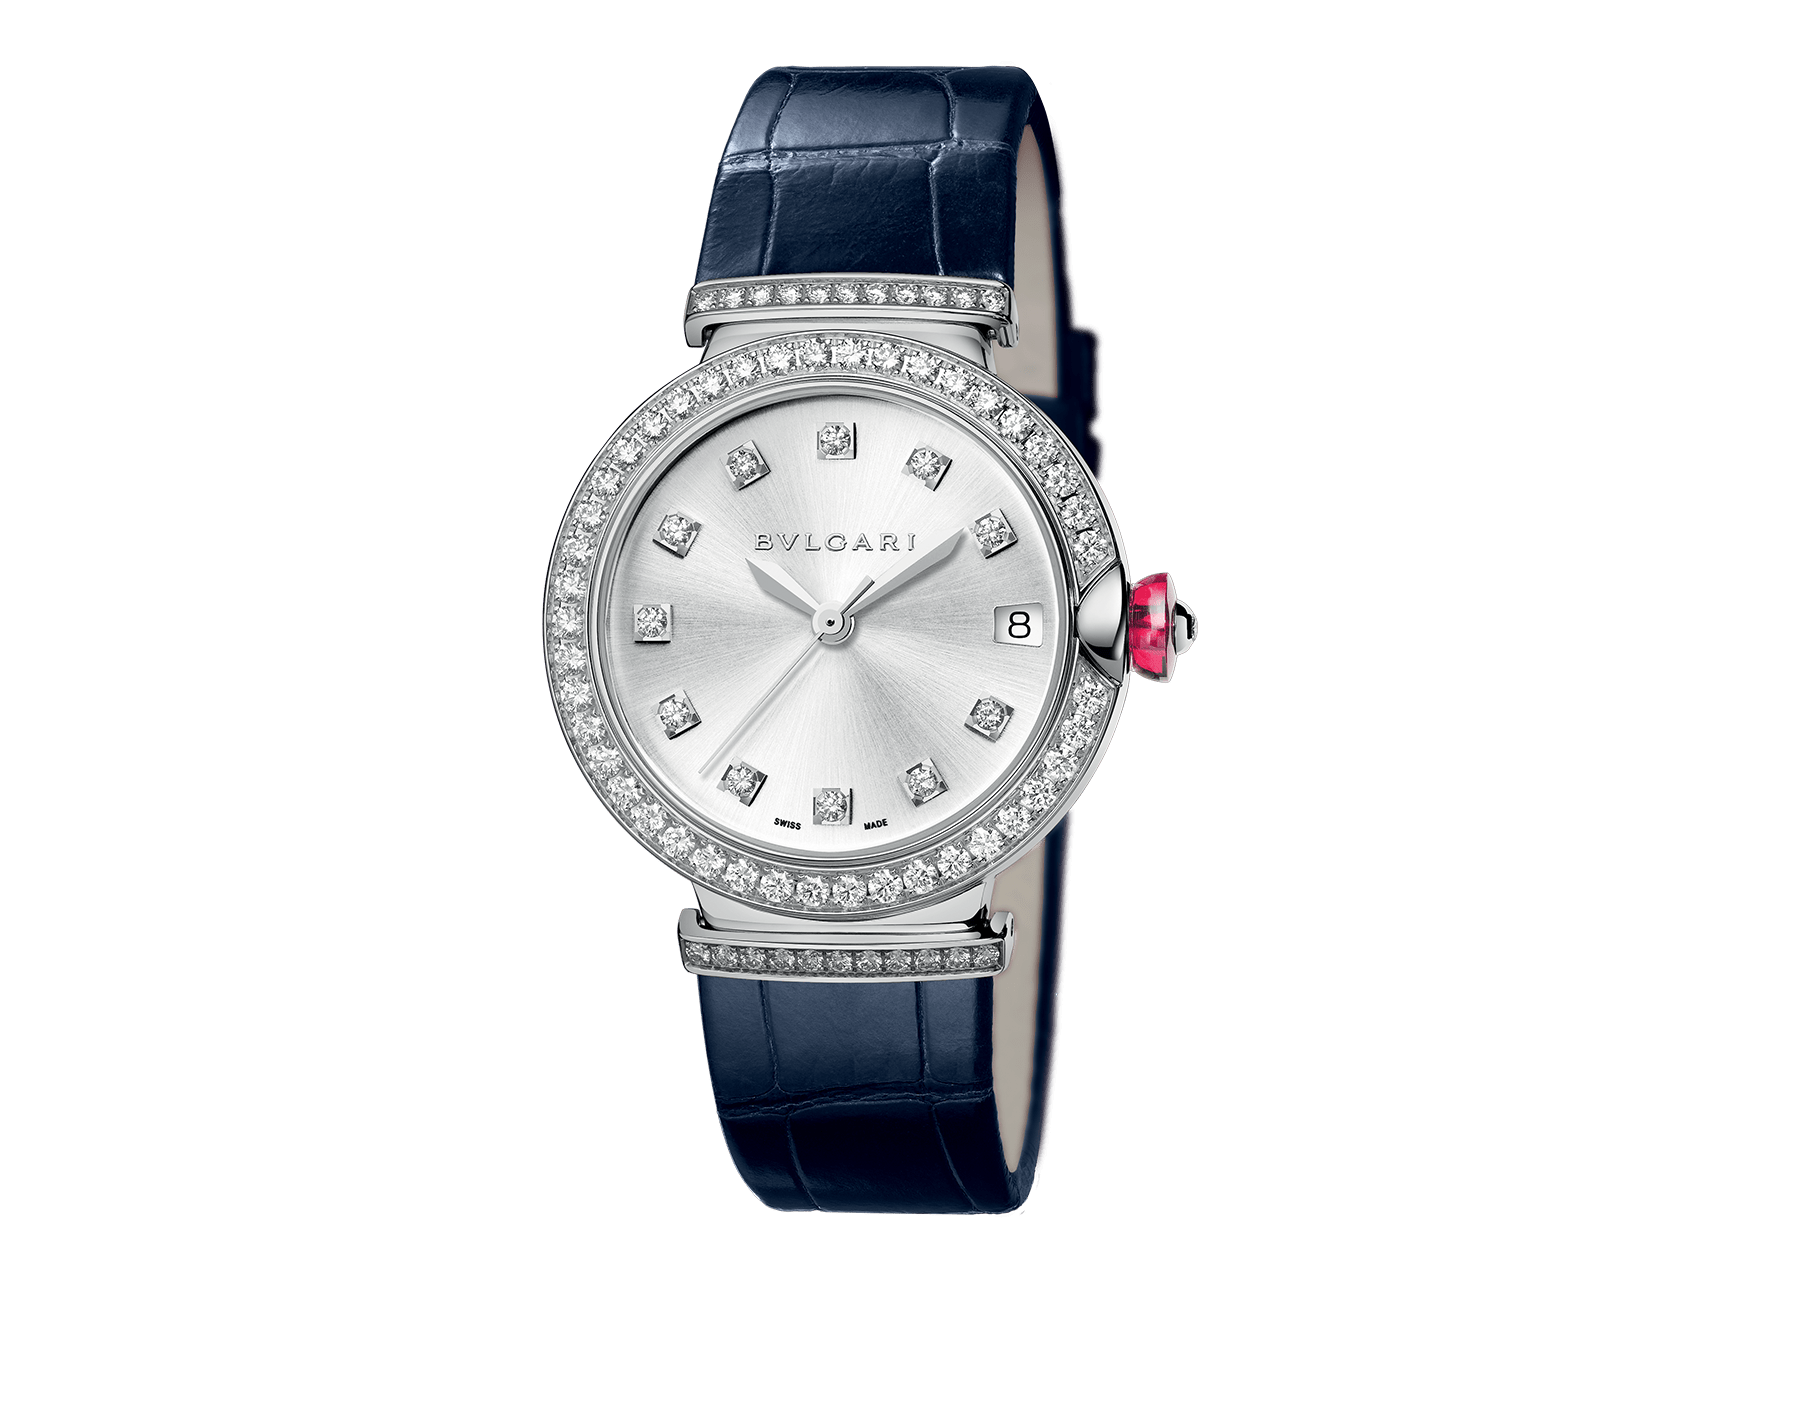 LVCEA watch with 18 kt white gold case set with brilliant-cut diamonds, silver satiné soleil dial set with diamond indexes and blue alligator strap. 102389 image 1